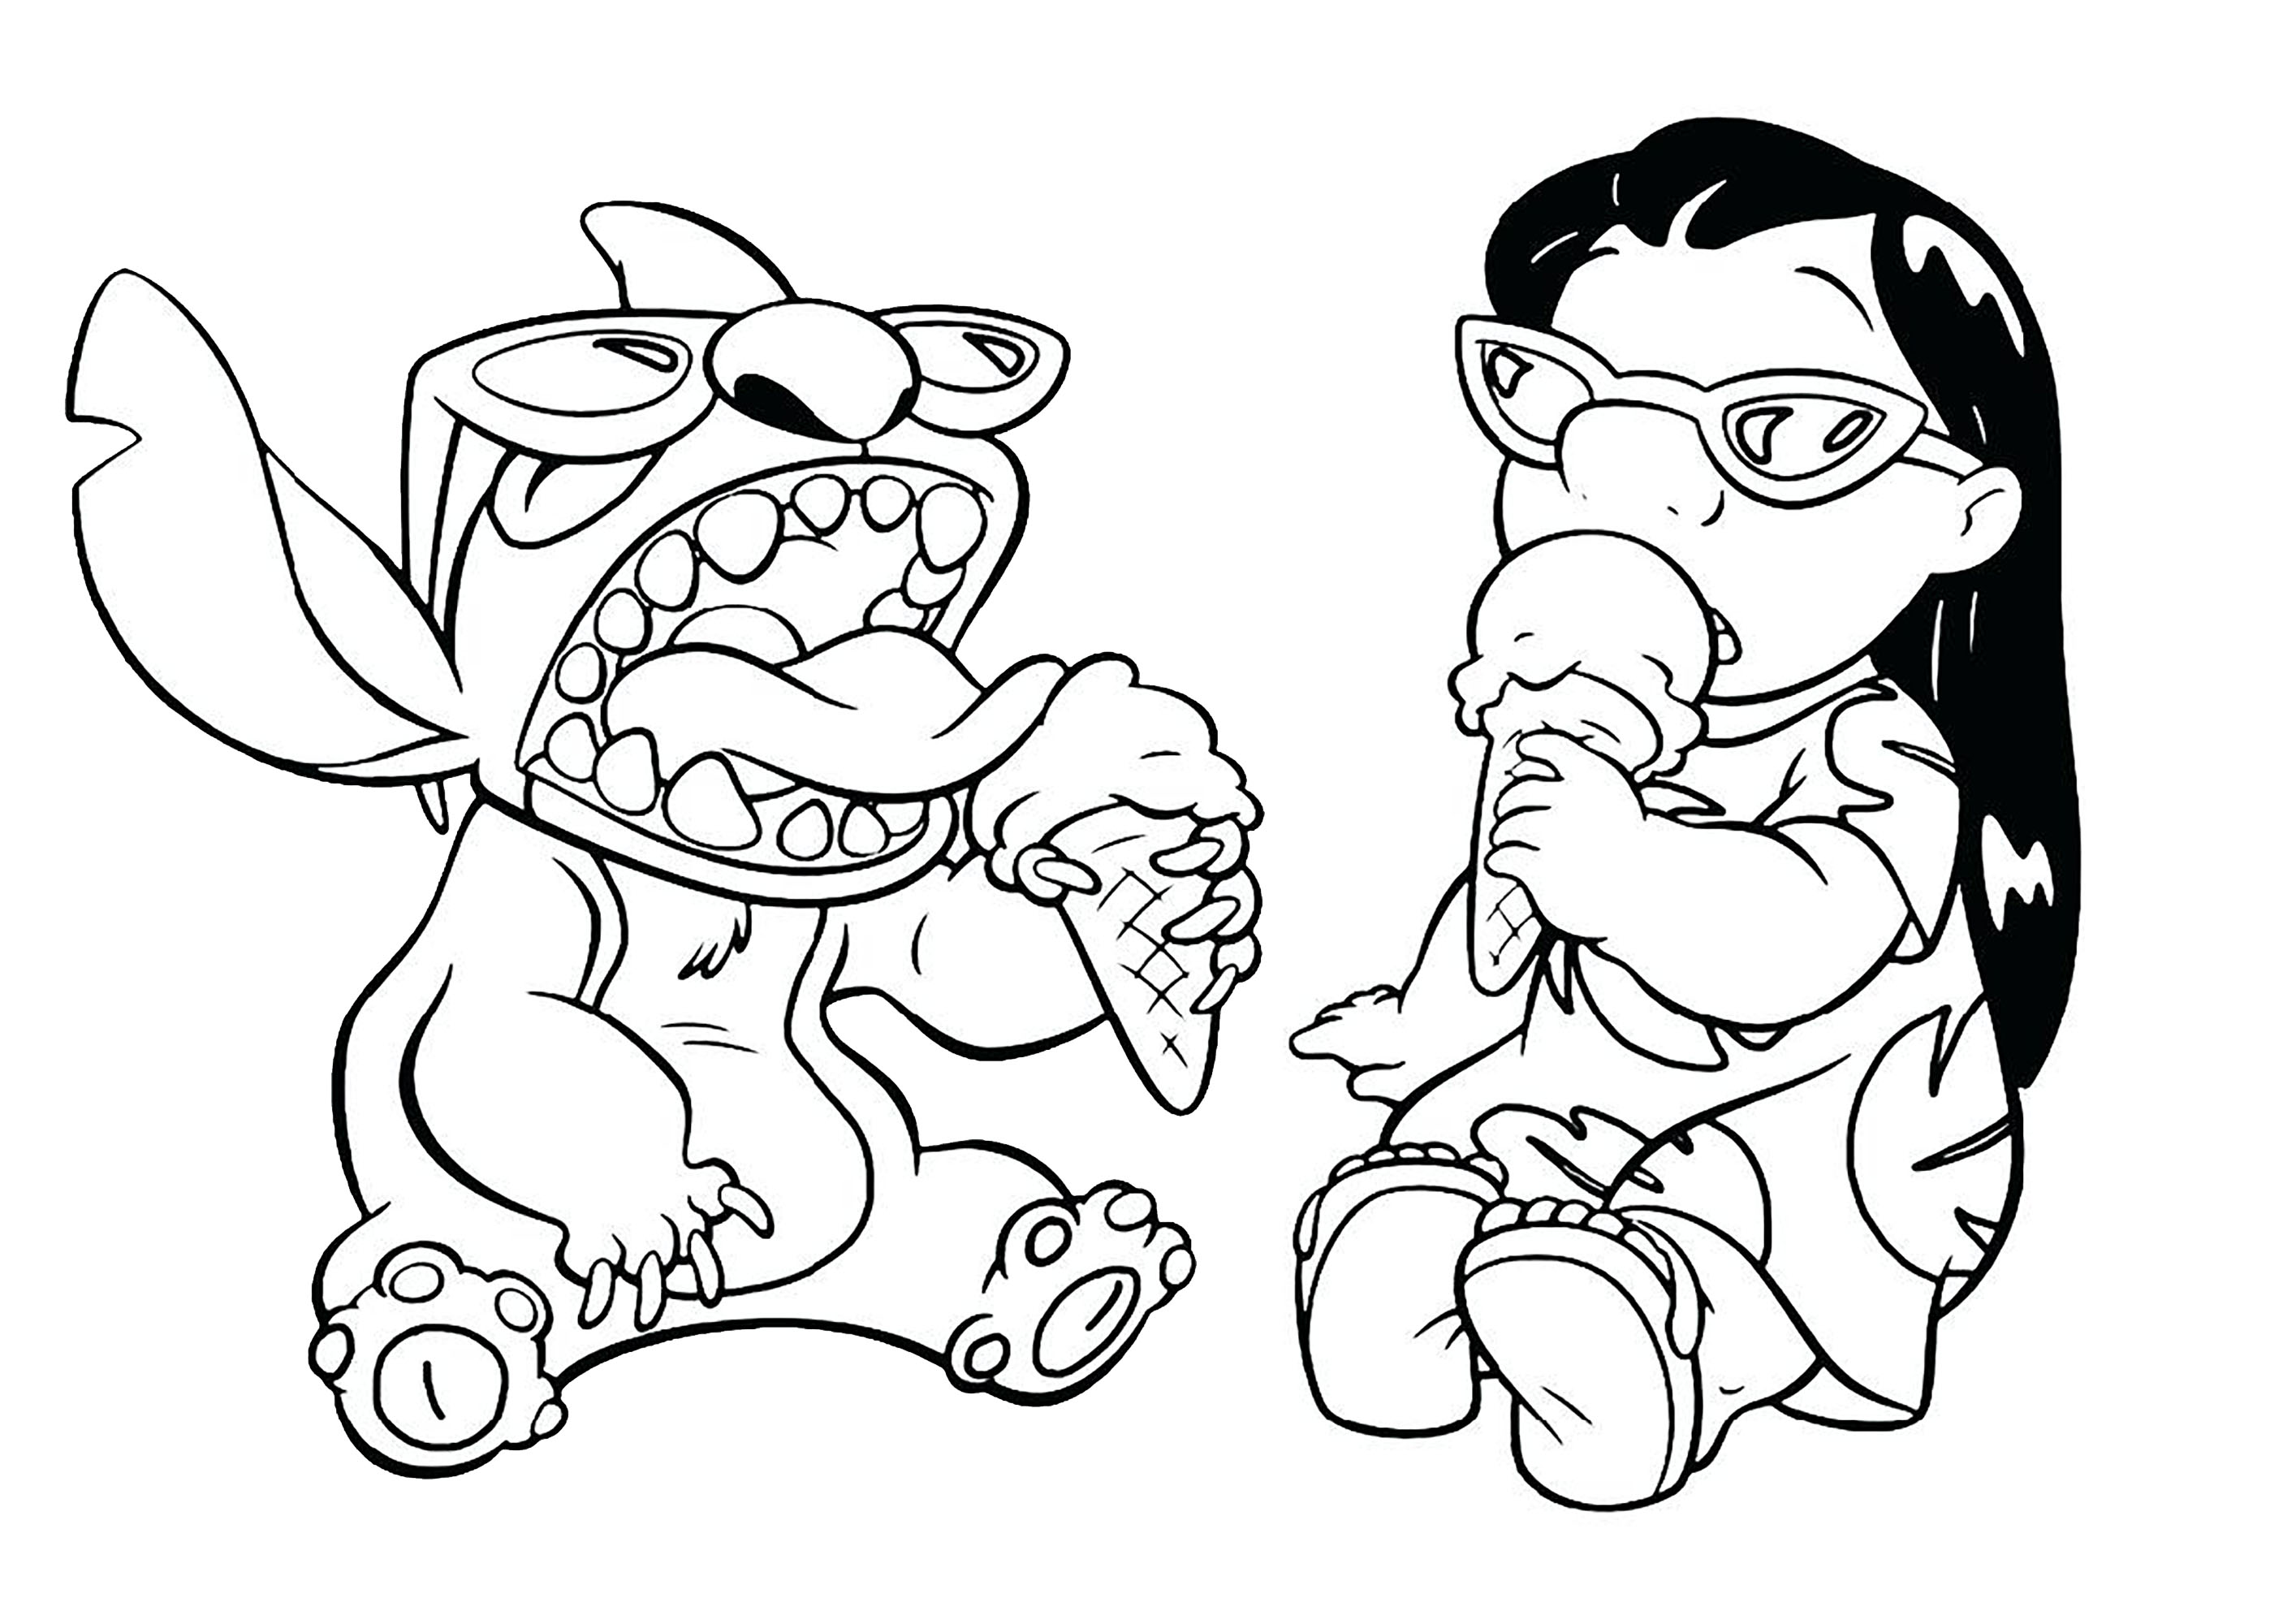 Lilo And Stitch Coloring Pages Funny Lilo And Stitch Coloring ... | 2000x2828